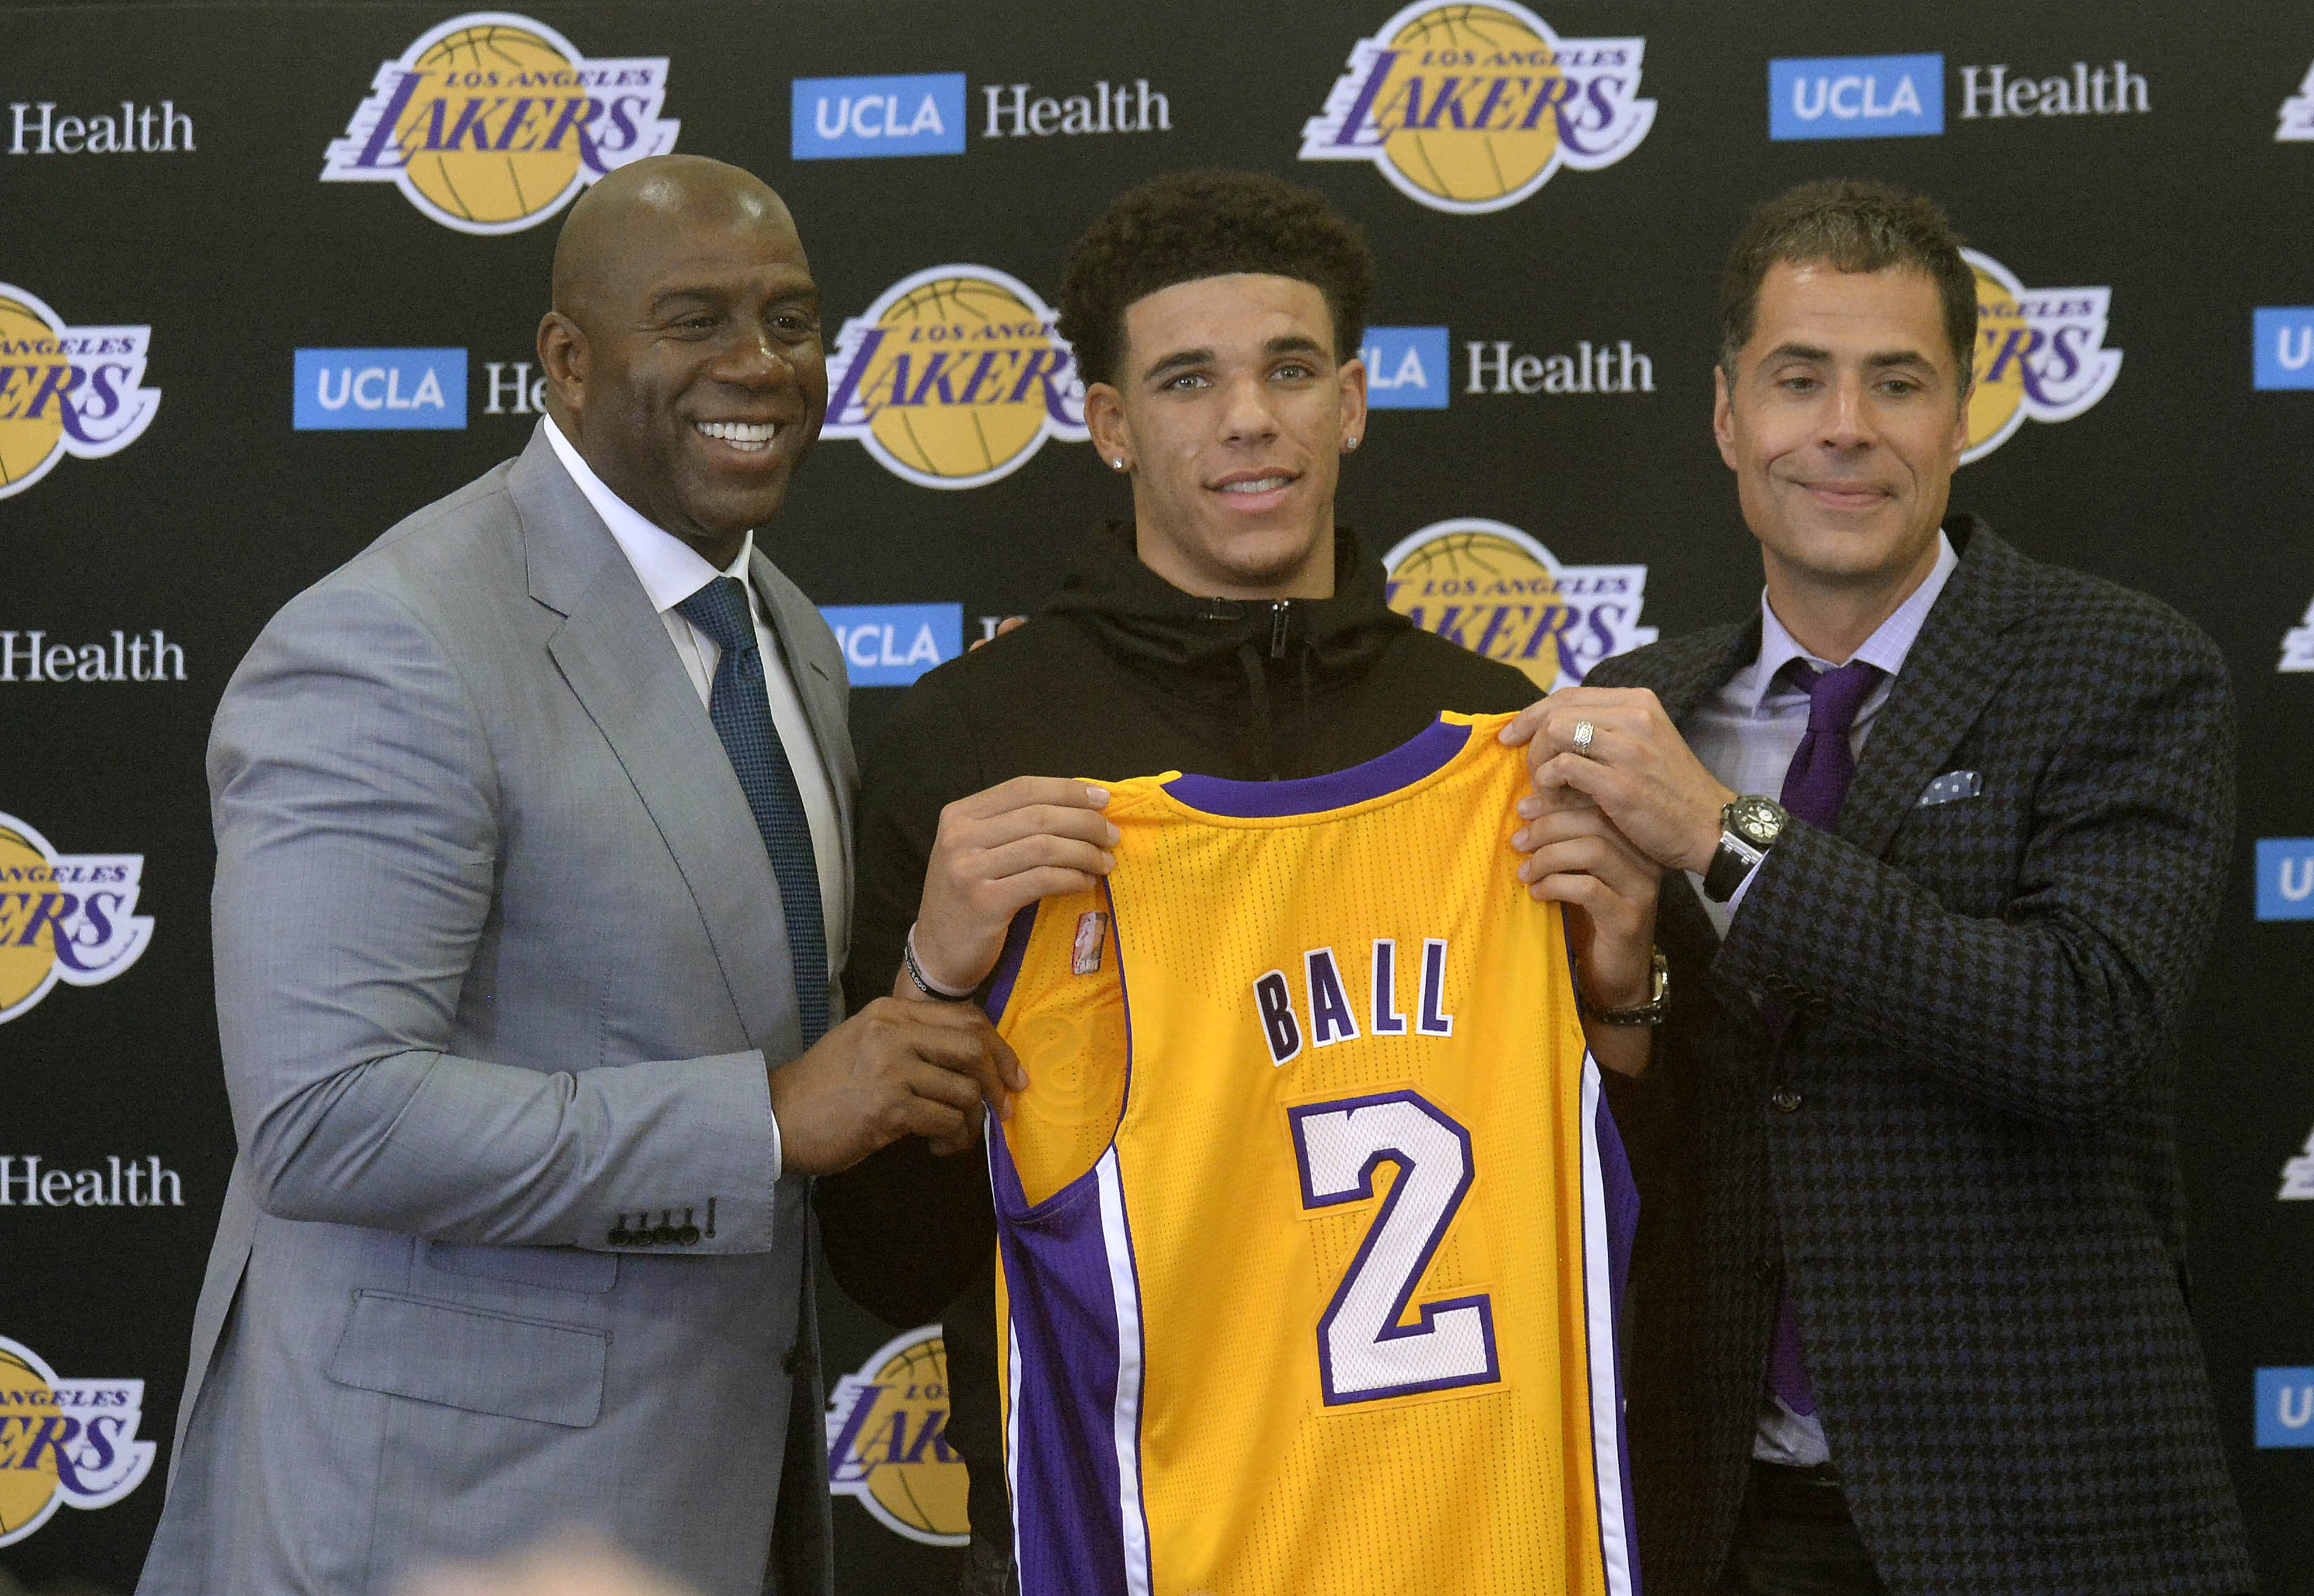 10127230-nba-los-angeles-lakers-press-conference-3